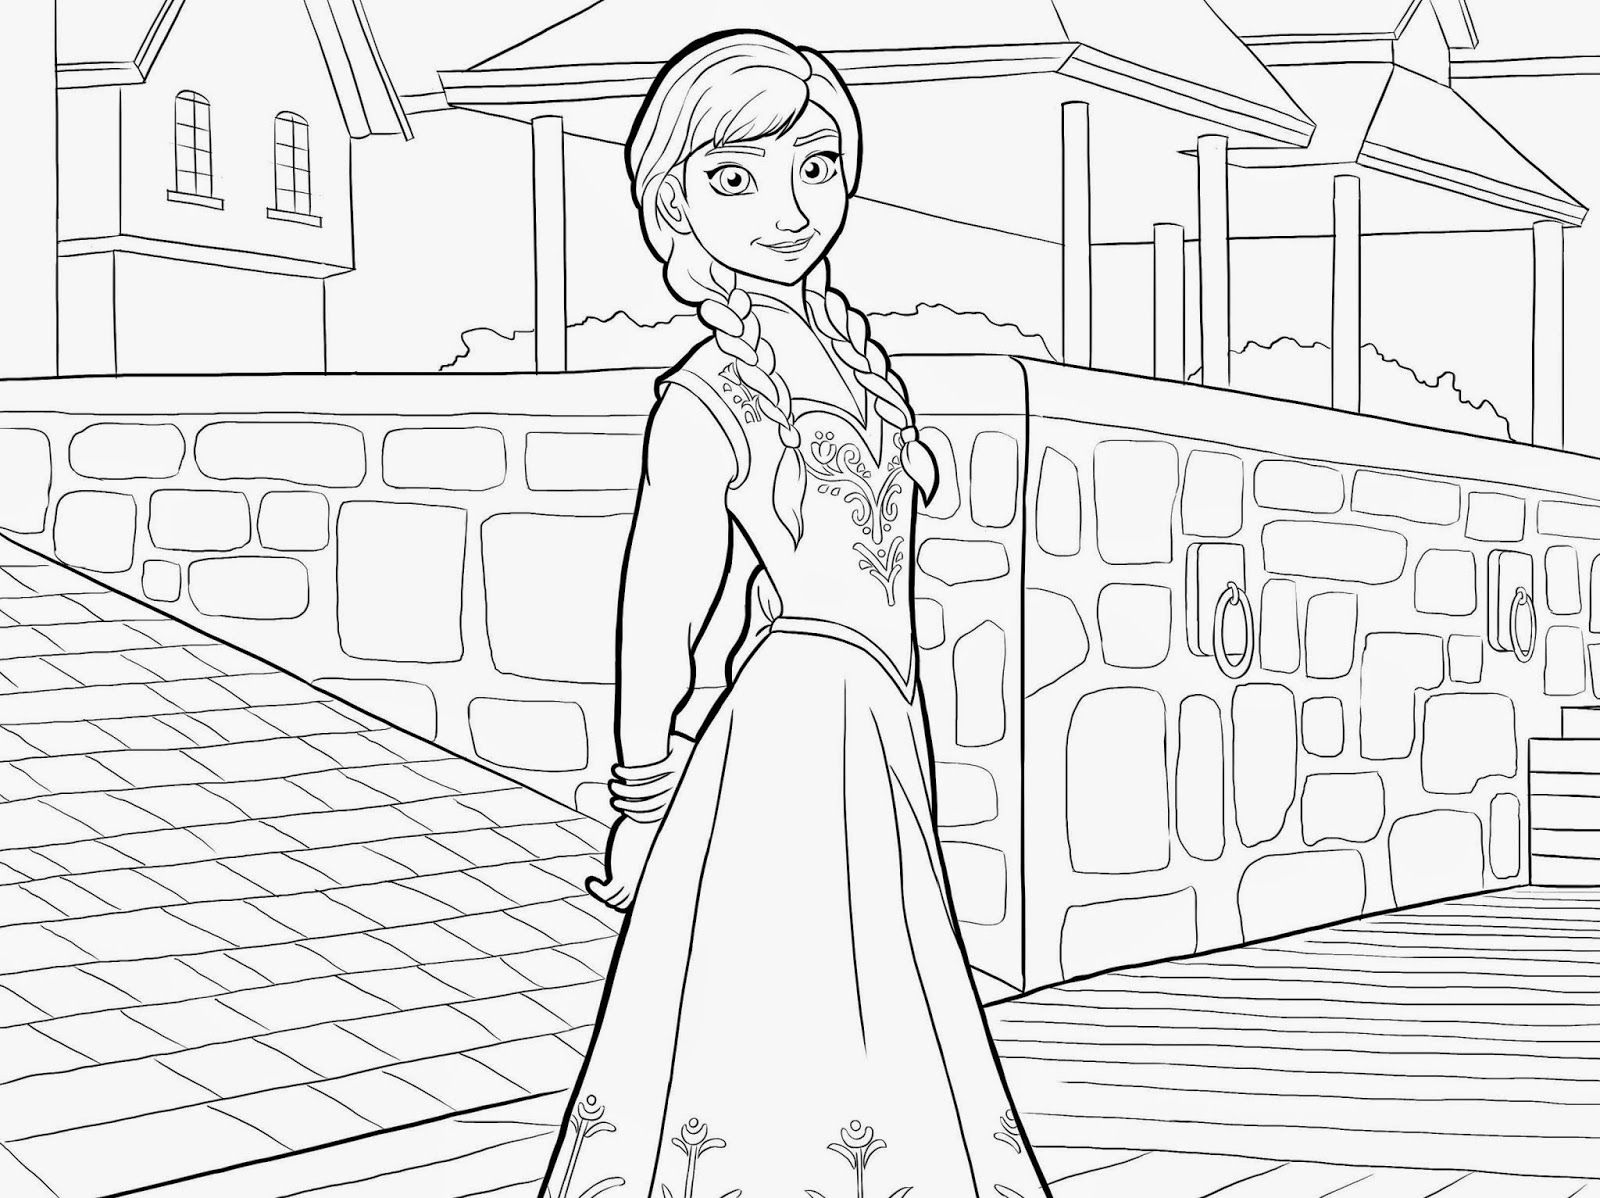 Frozen Elsa Anna Coloring Pages Frozen Elsa Anna Coloring Pages Frozen Inspired By The Story Of The Frozen Coloring Pages Frozen Coloring Elsa Coloring Pages